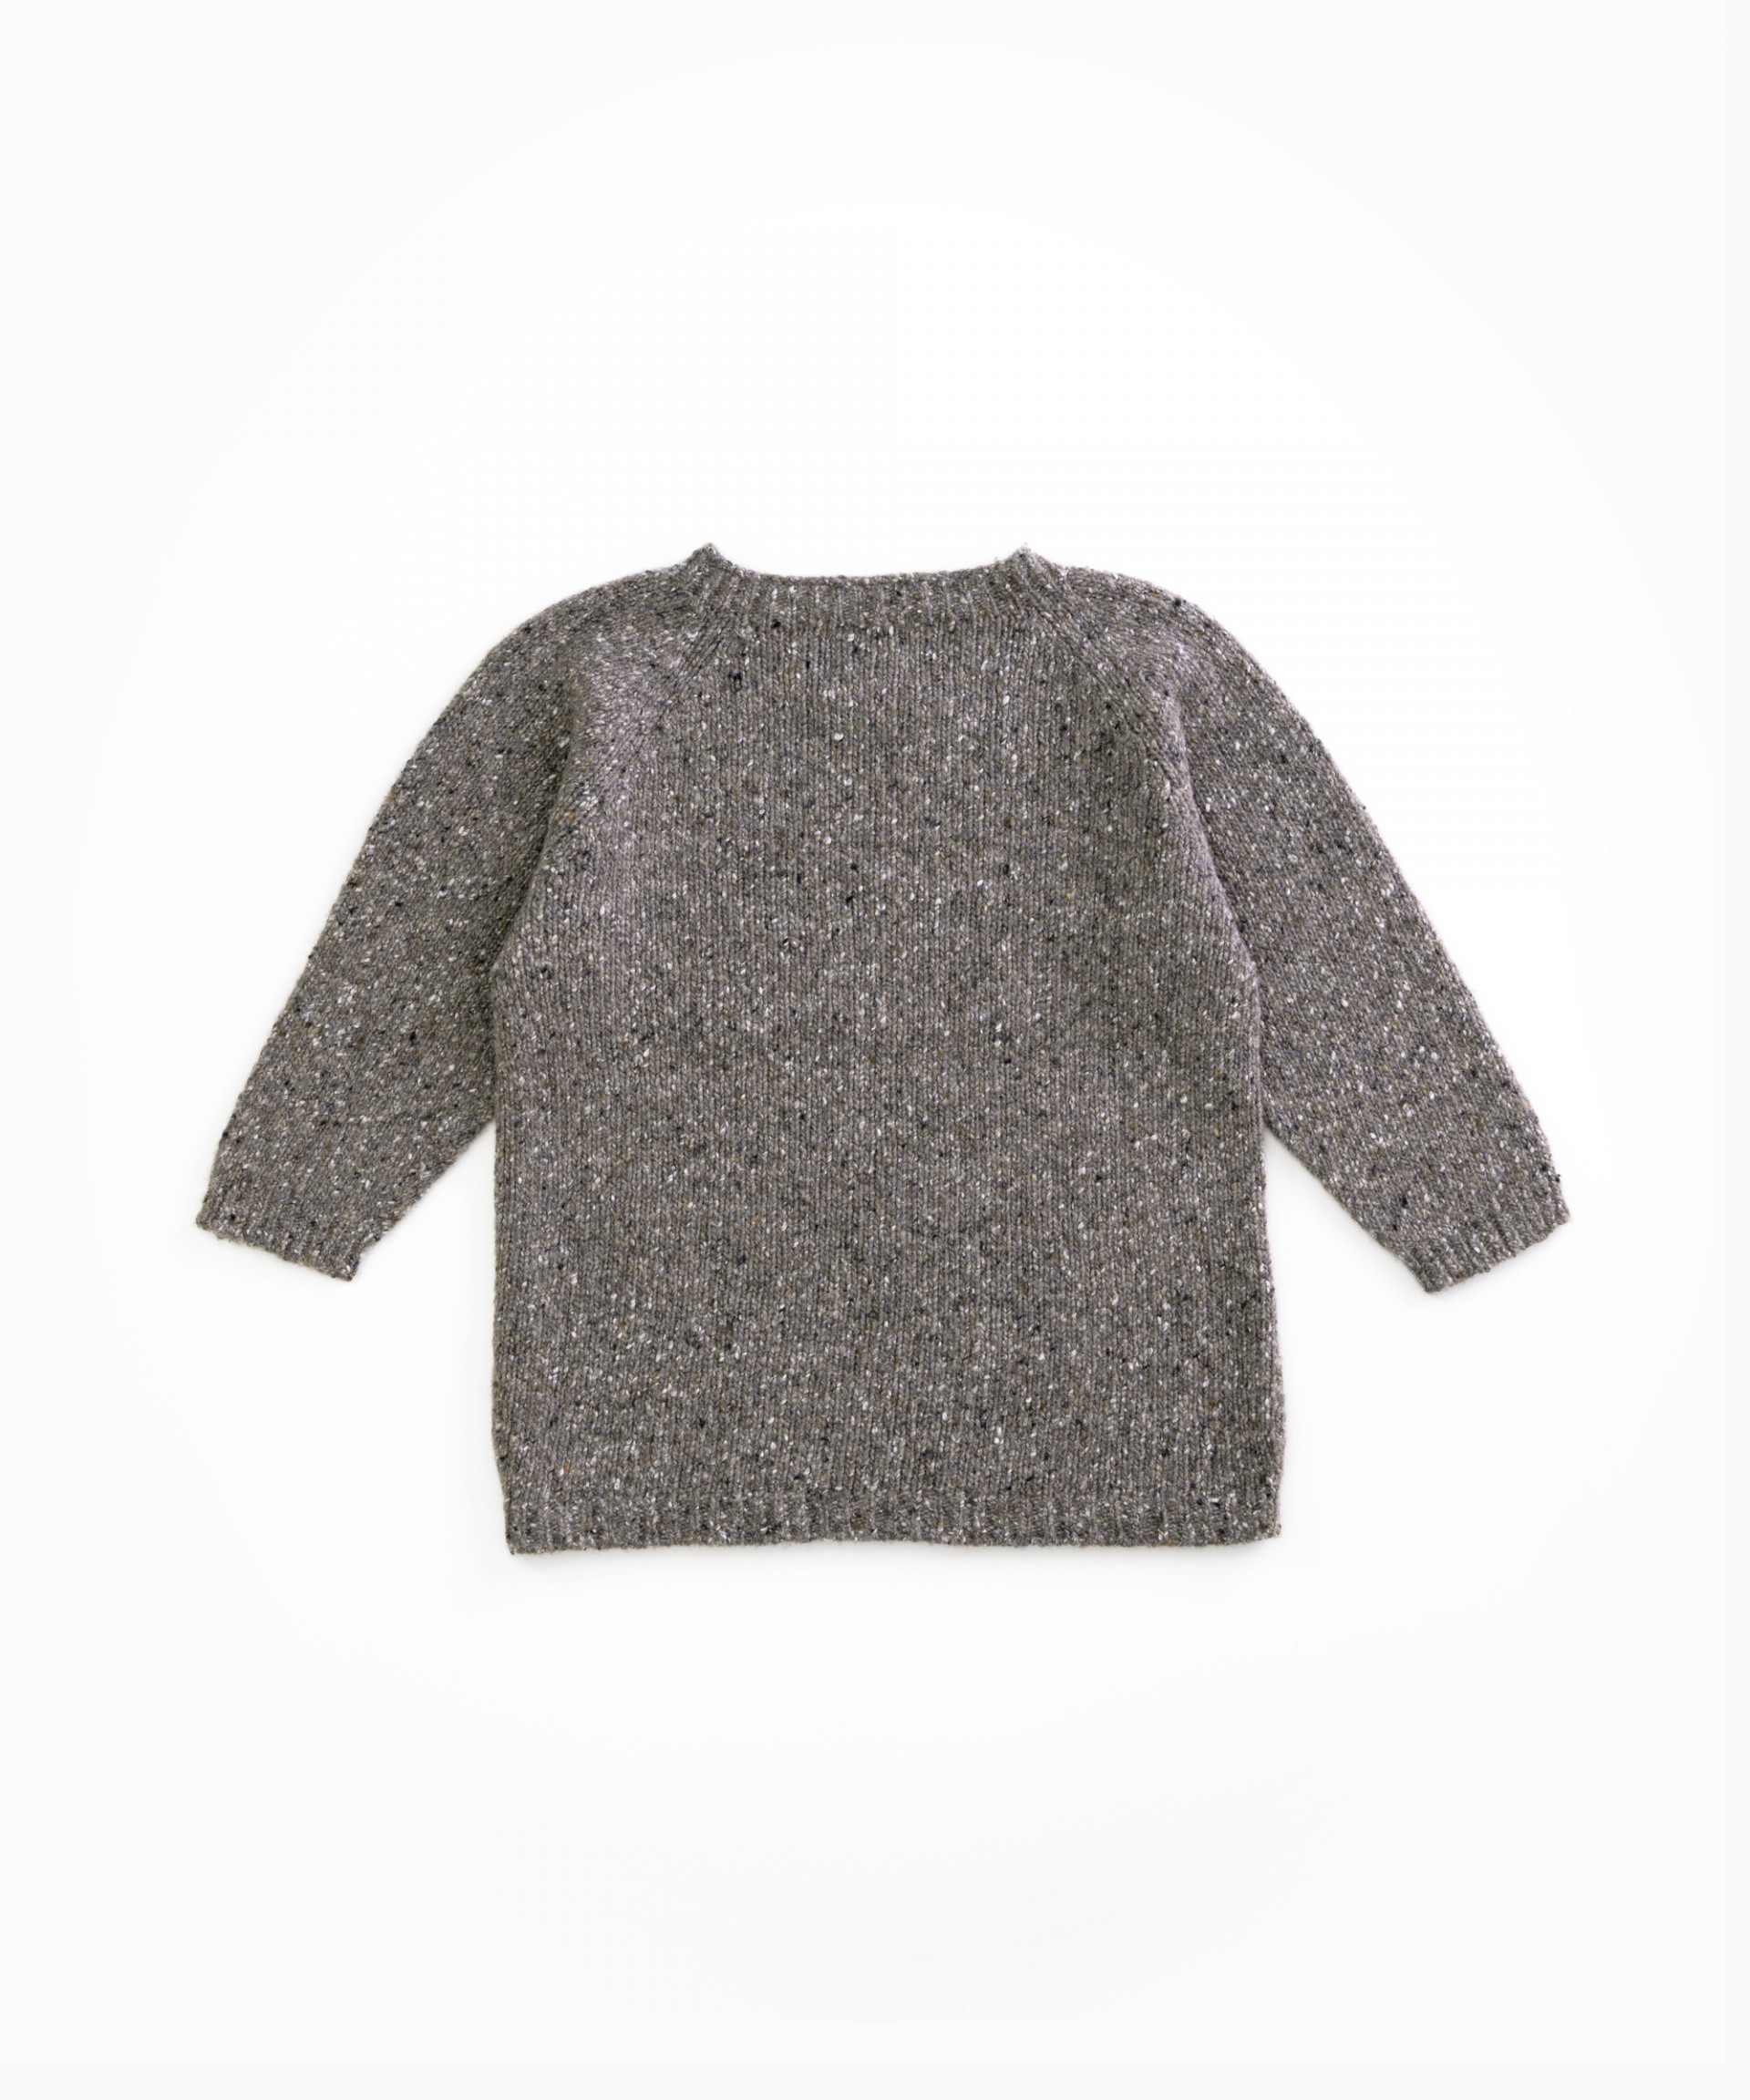 Knitted sweater with recycled fibres | Woodwork